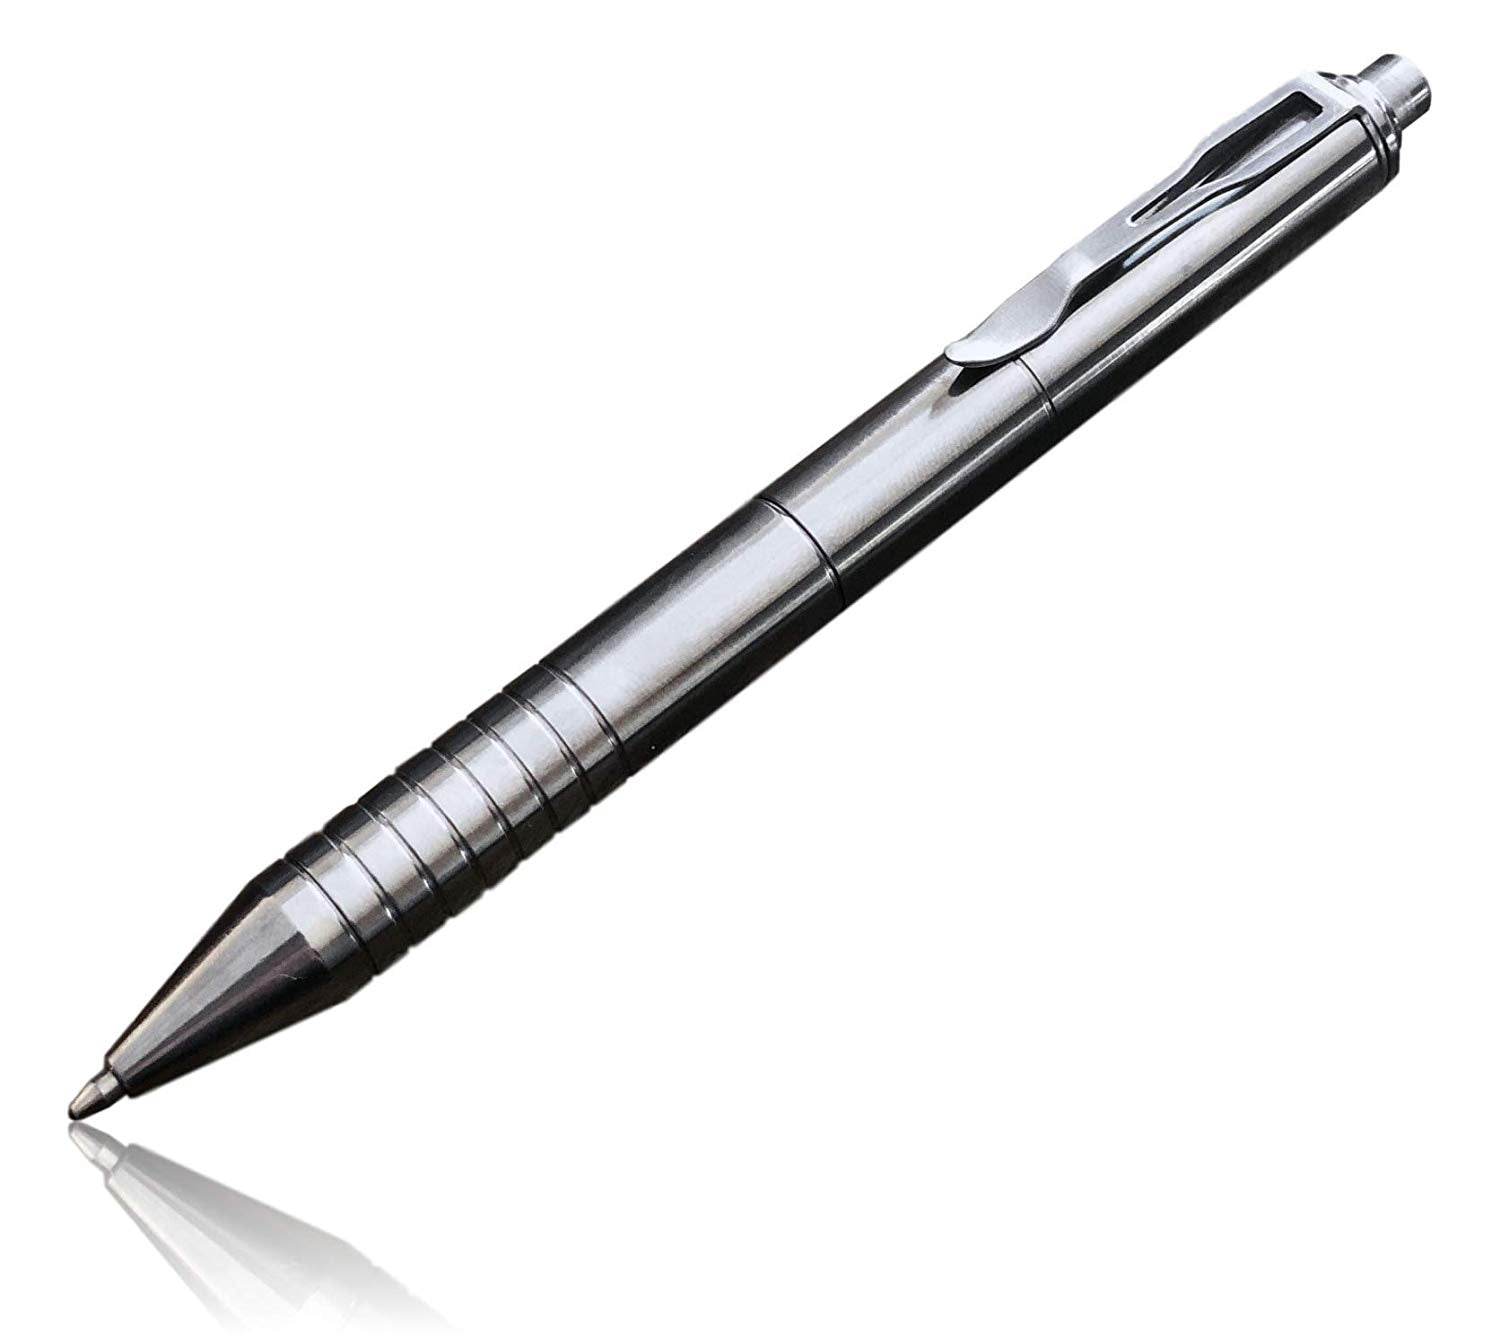 Valtcan Paladin Titanium Ballpoint Click Pen Polished Natural Finish